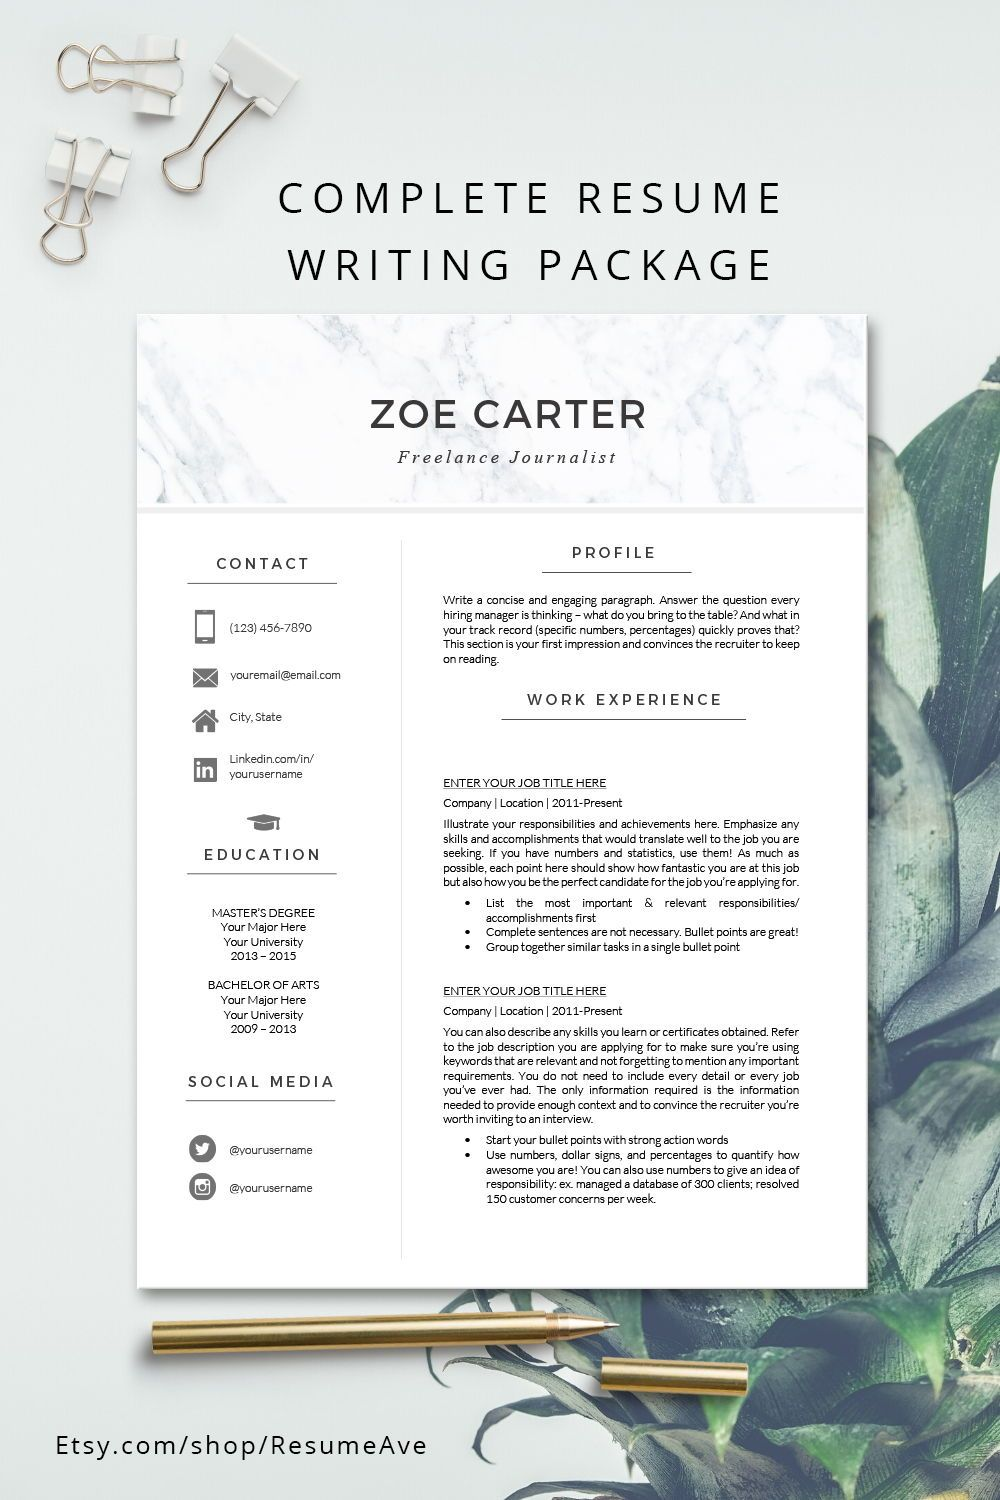 Nurse Resume Template With Marble Header Modern And Creative Etsy In 2020 Resume Template Word Resume Template Minimalist Resume Template